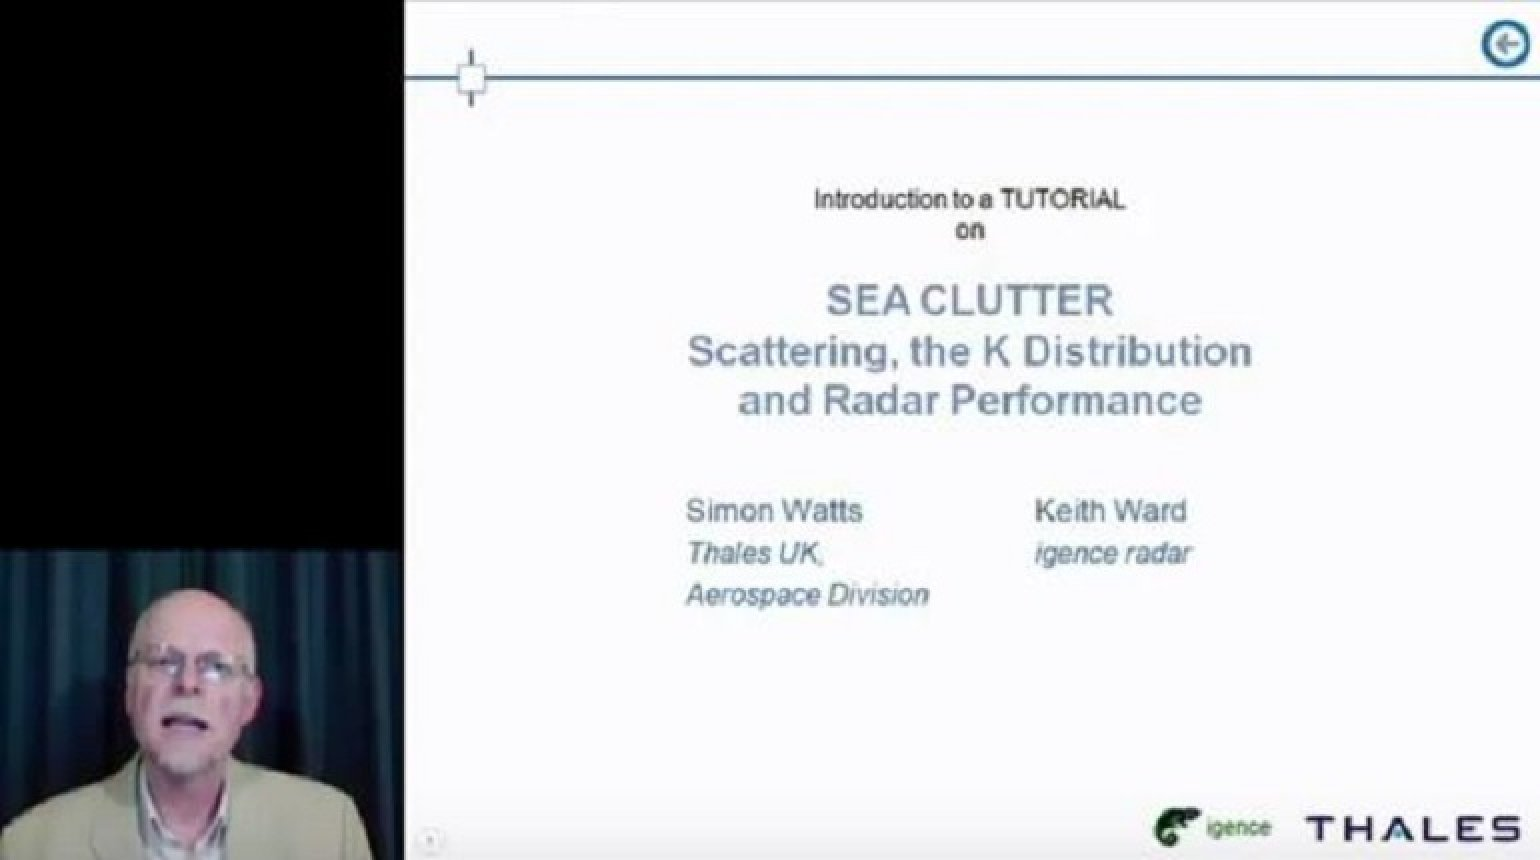 Sea Clutter Scattering, the K Distribution and Radar Performance Introduction